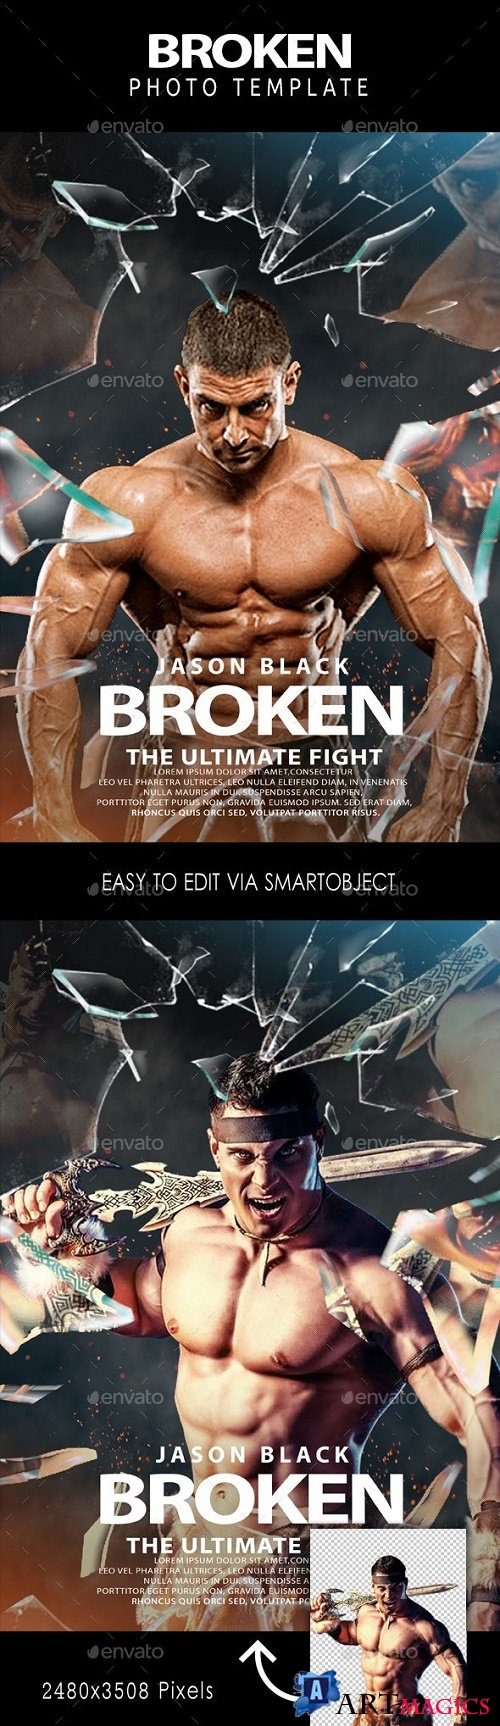 Broken Glass Action Movie Poster Template 24032099